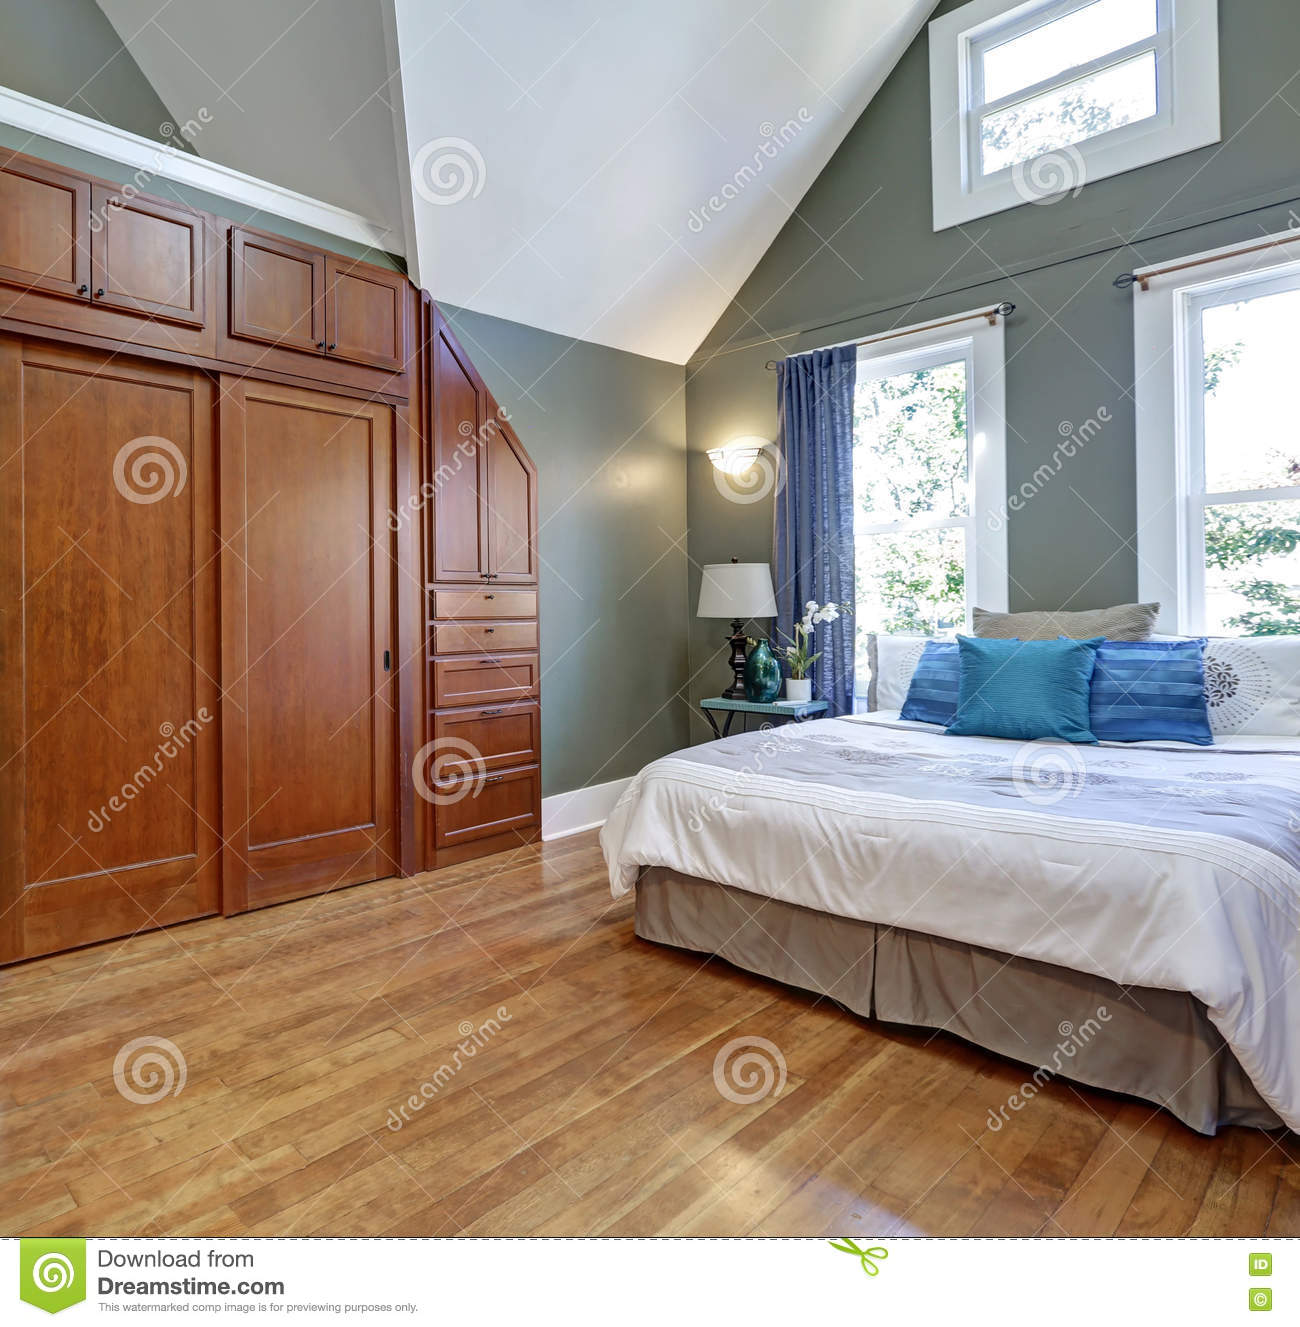 High vaulted ceiling bedroom interior design stock photo for Big bedroom interior design